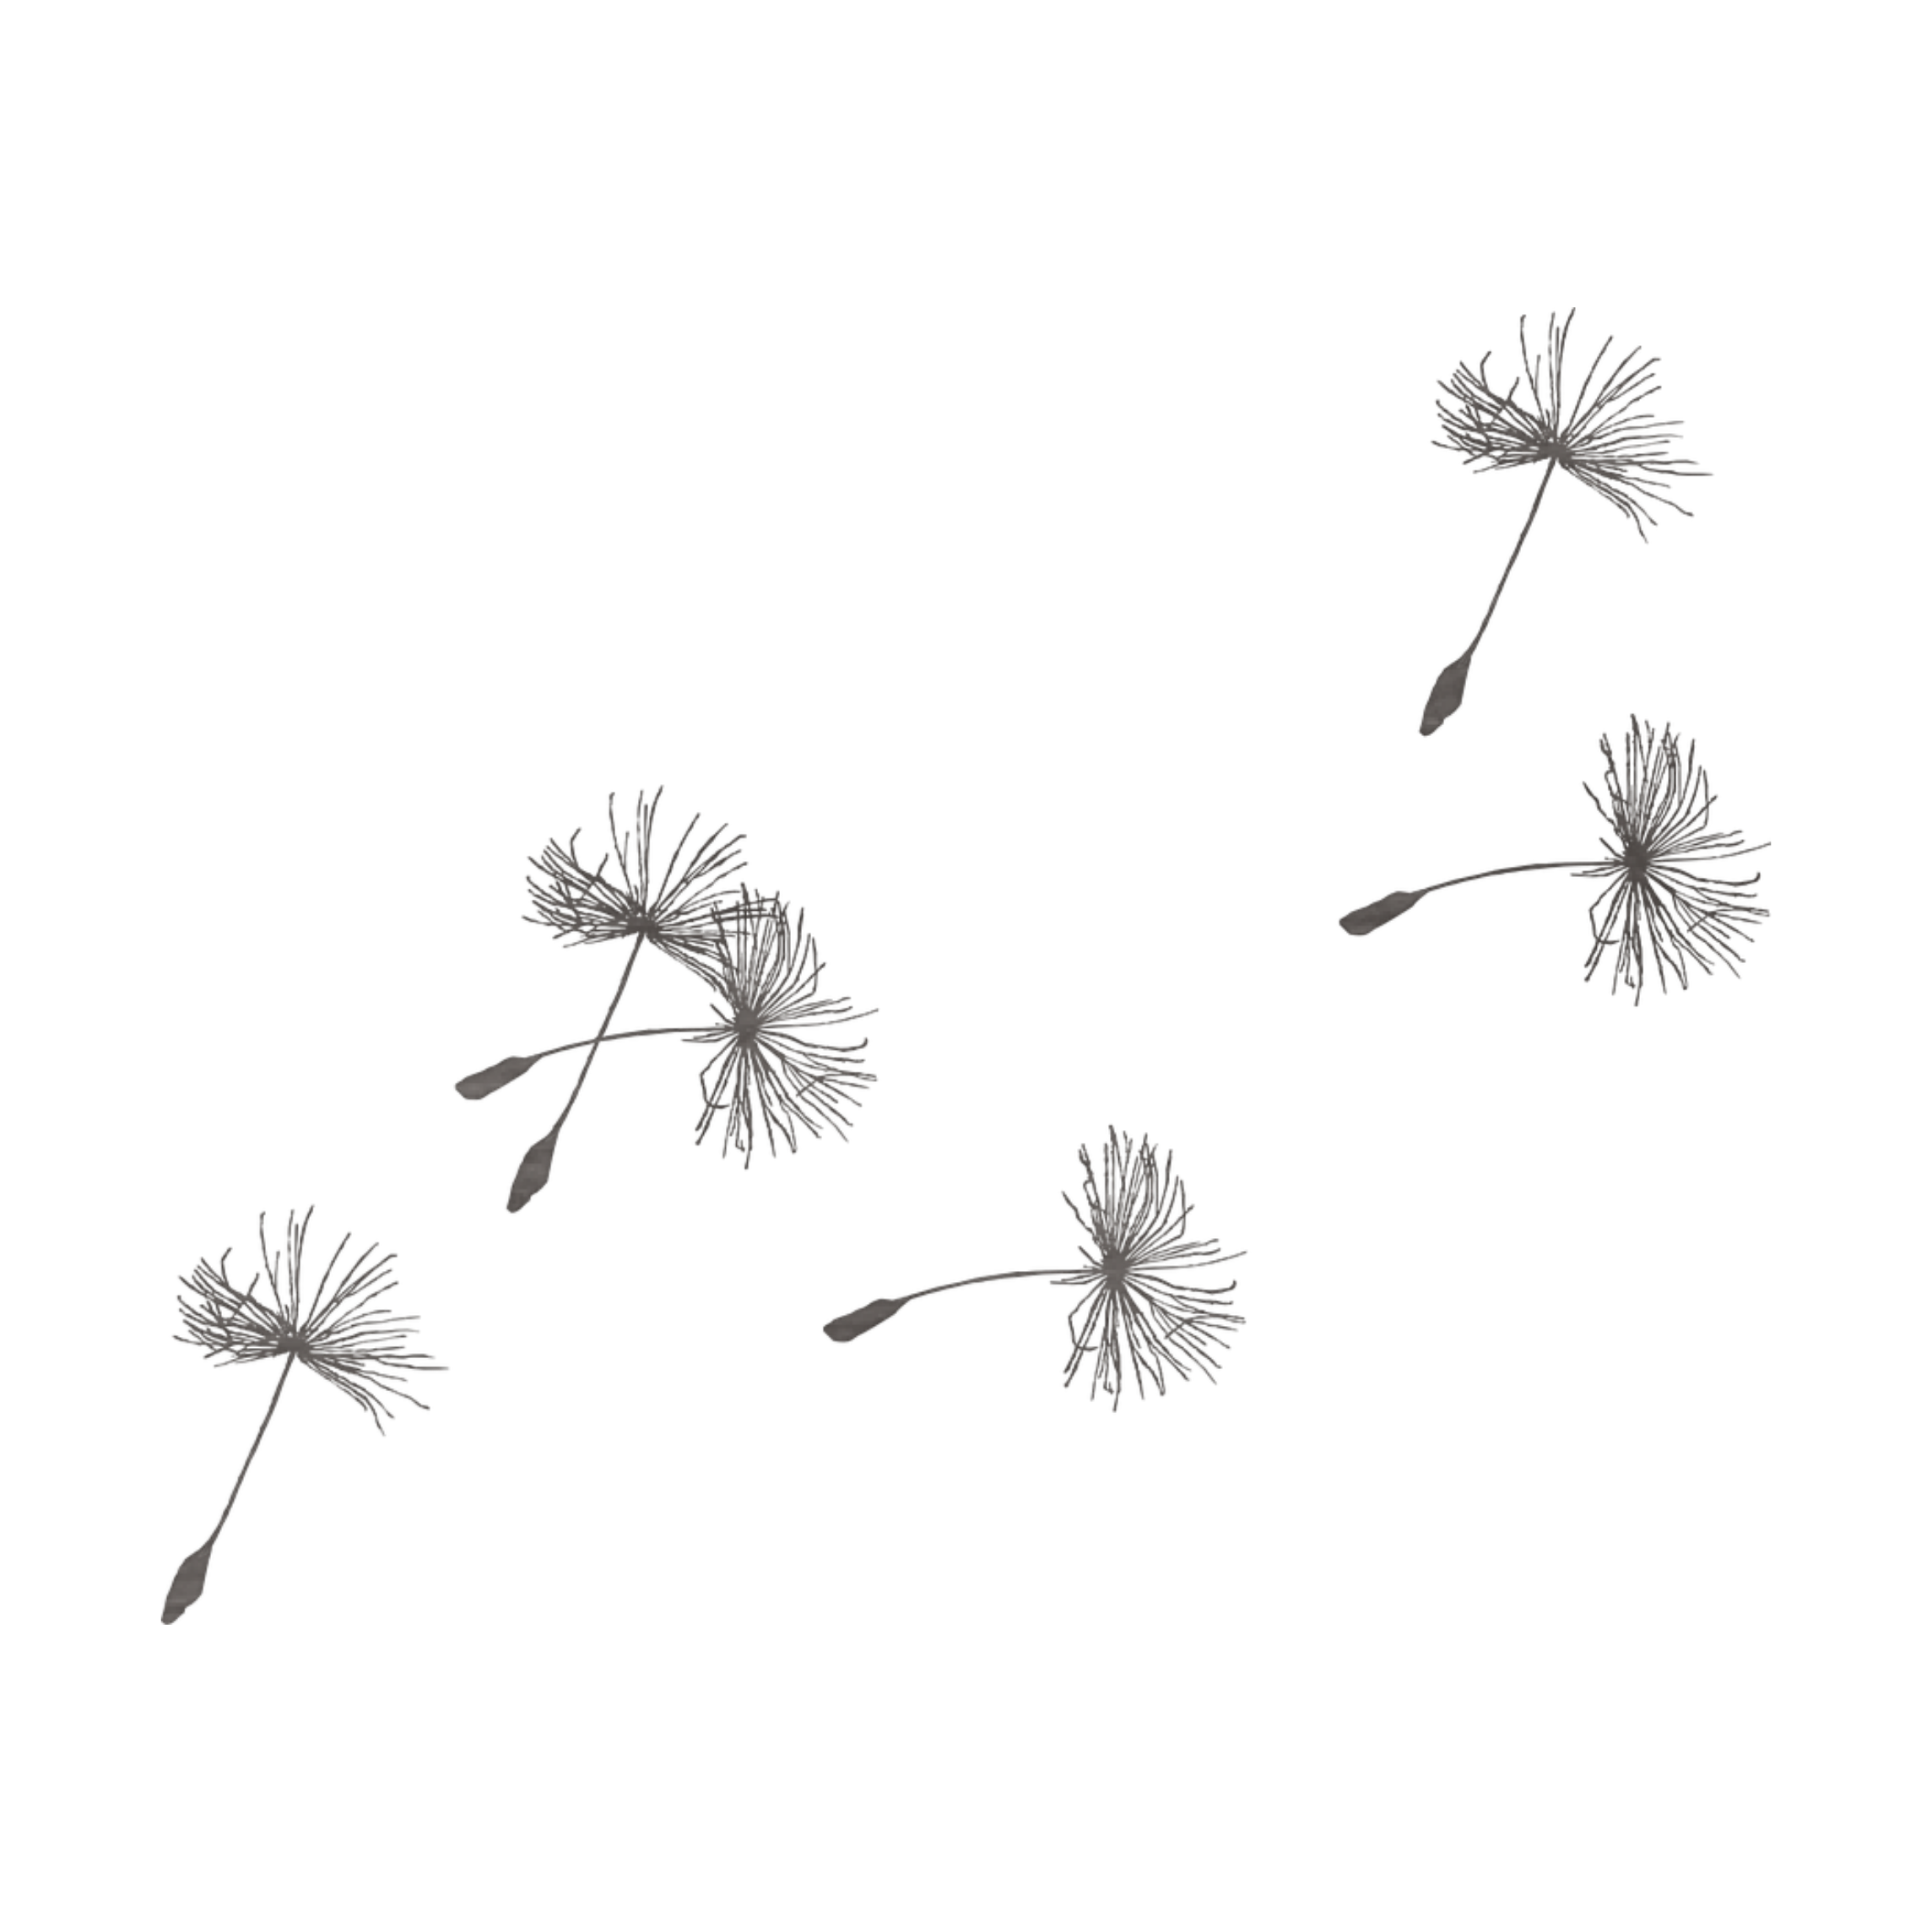 Dandelion Blowing In The Wind Drawing at PaintingValley.com.